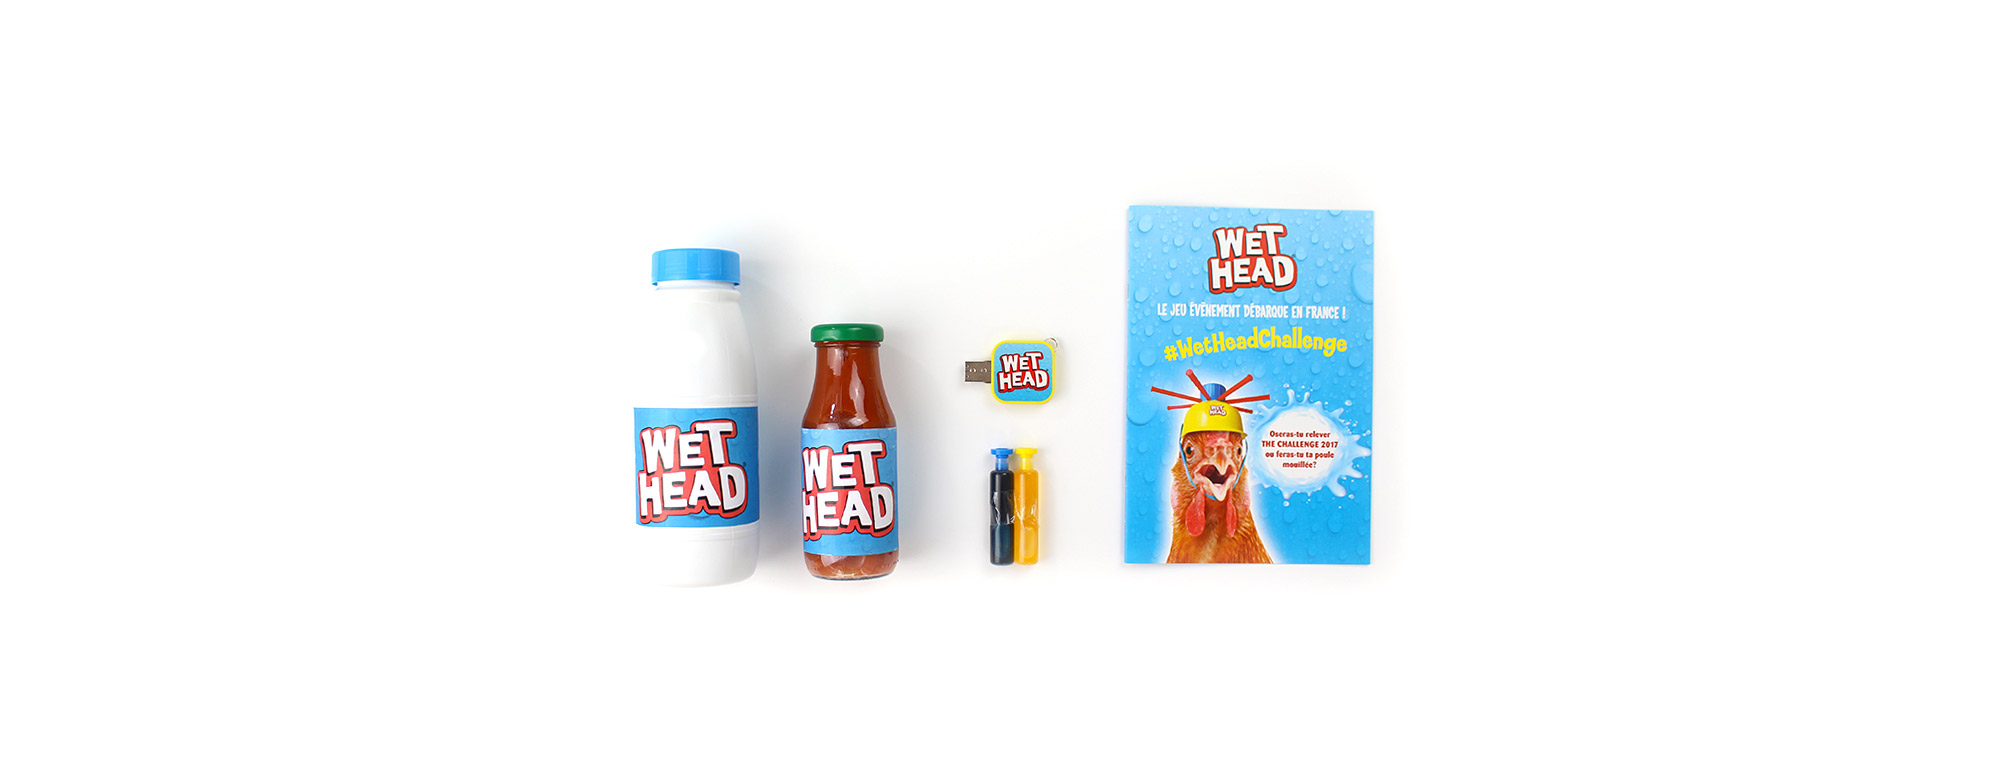 Wet Head - Communication digitale par Sharing Agency